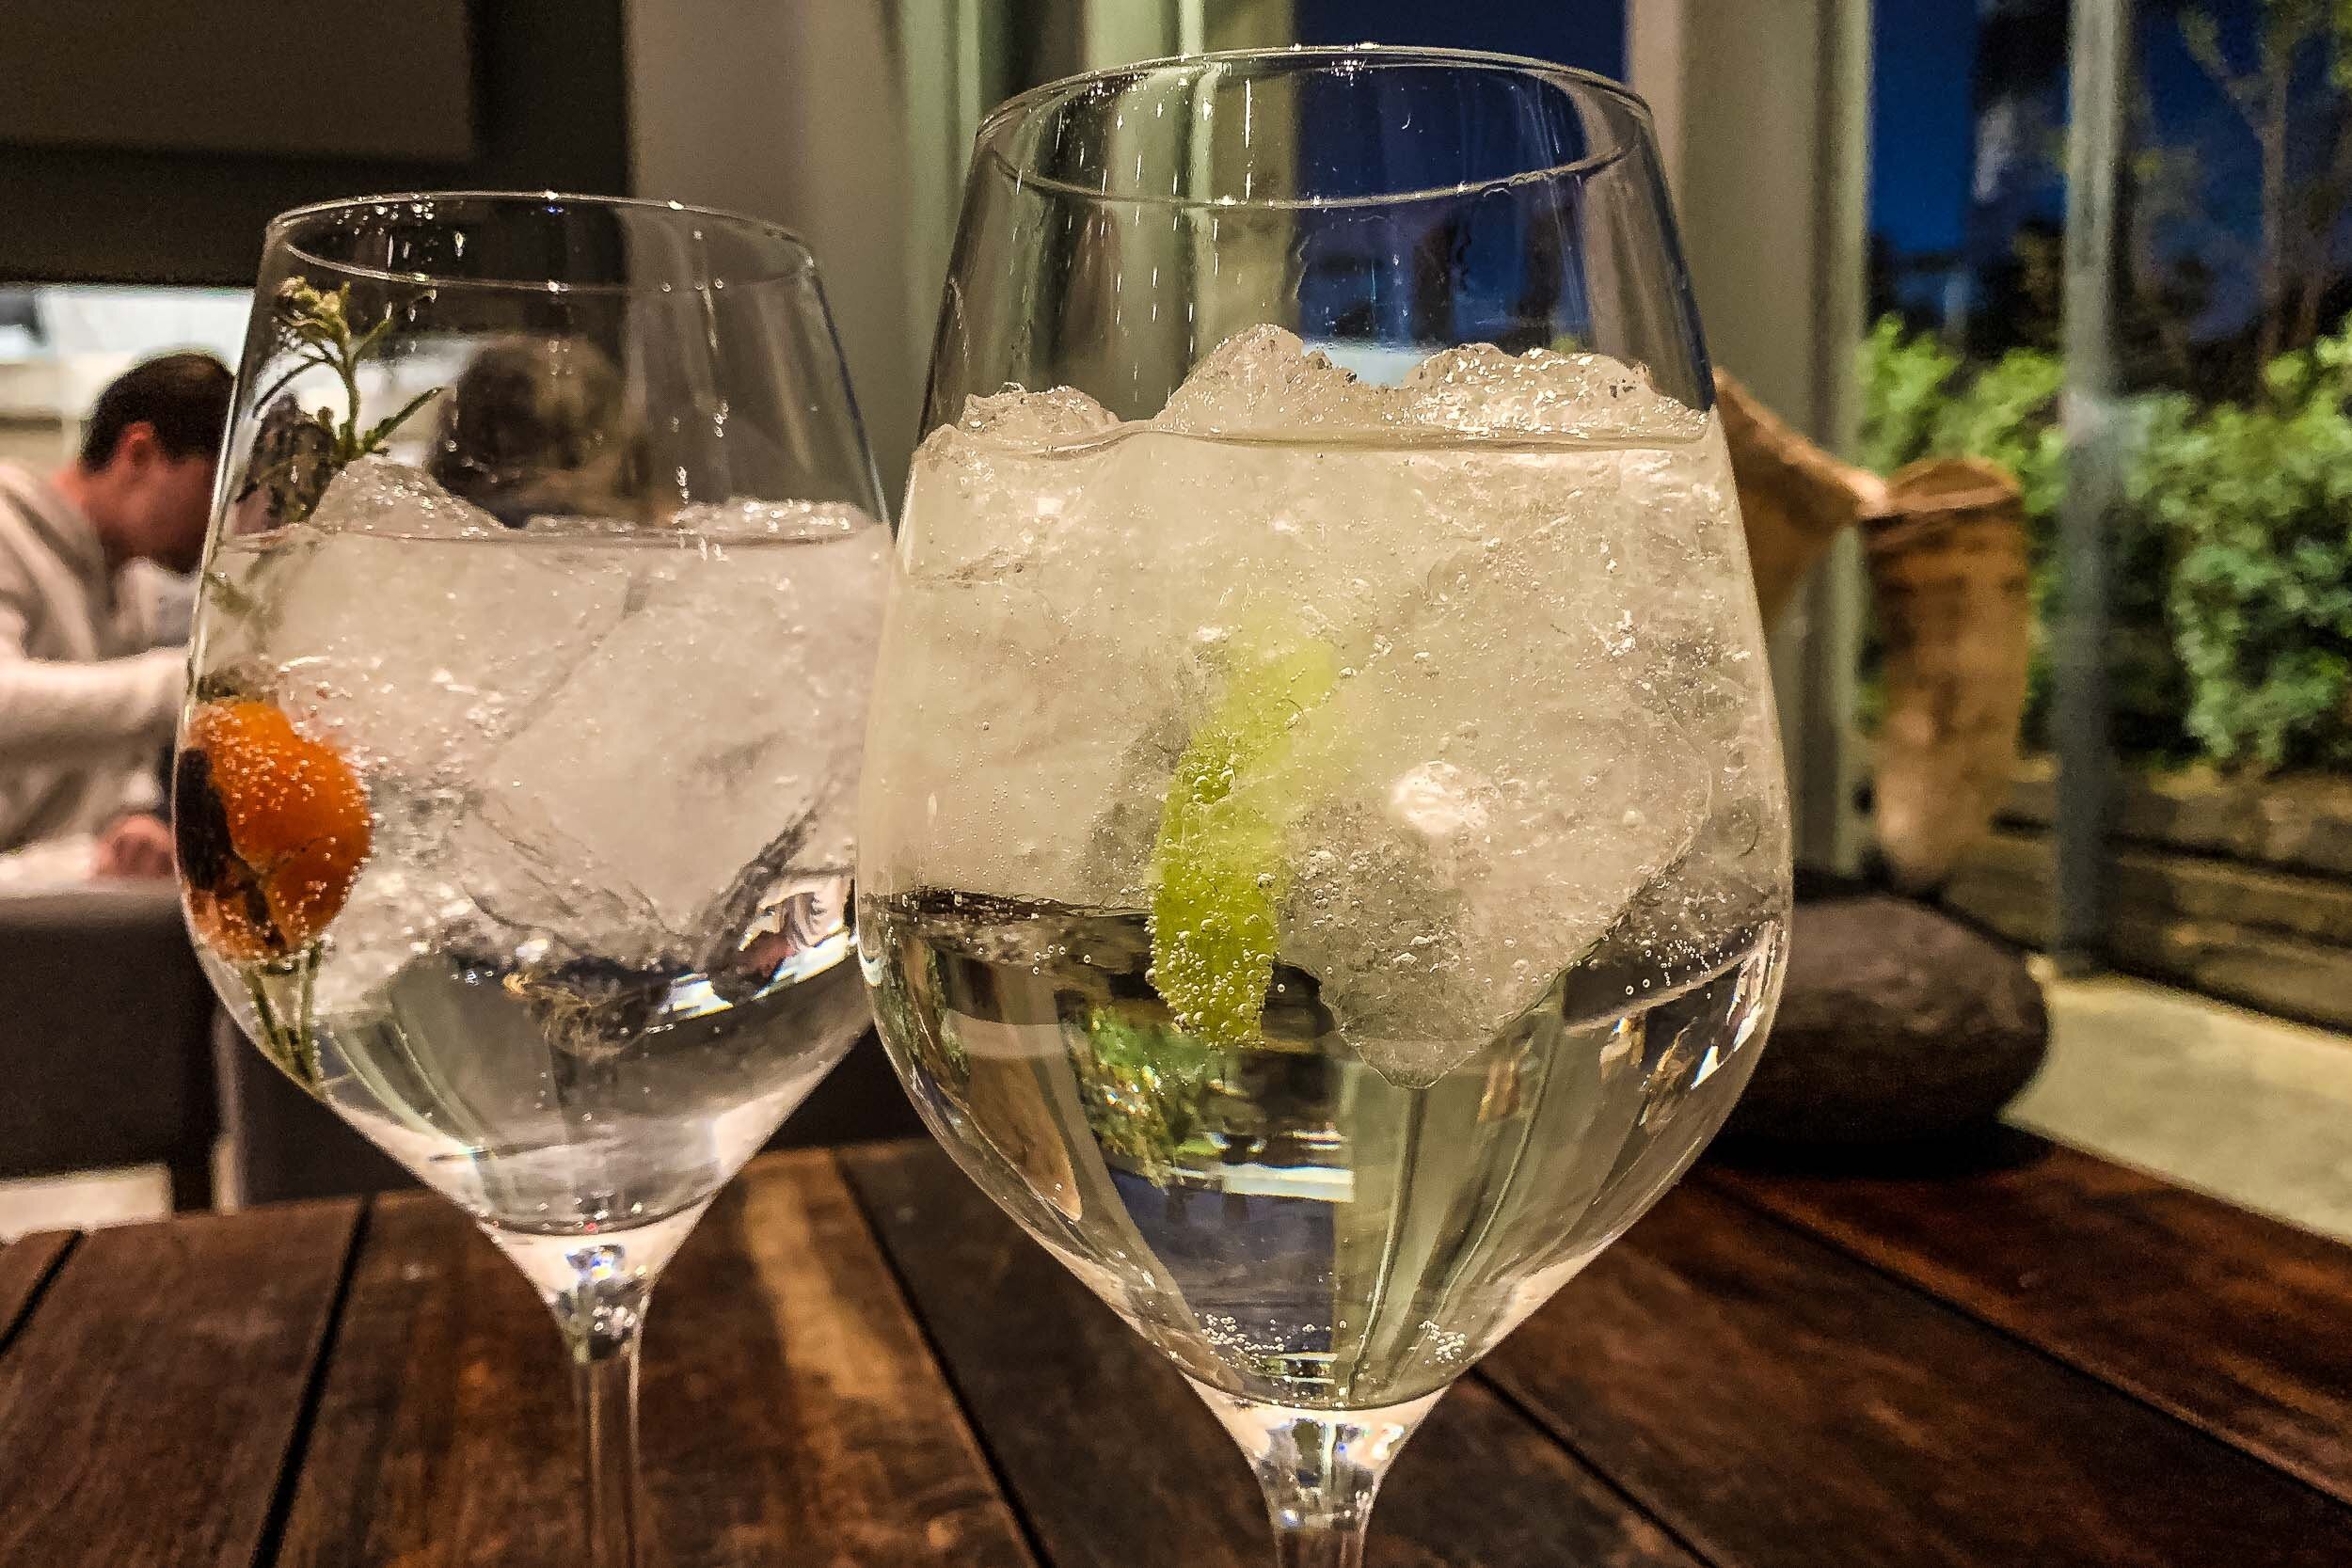 Refreshing aperitifs with local gin and pisco